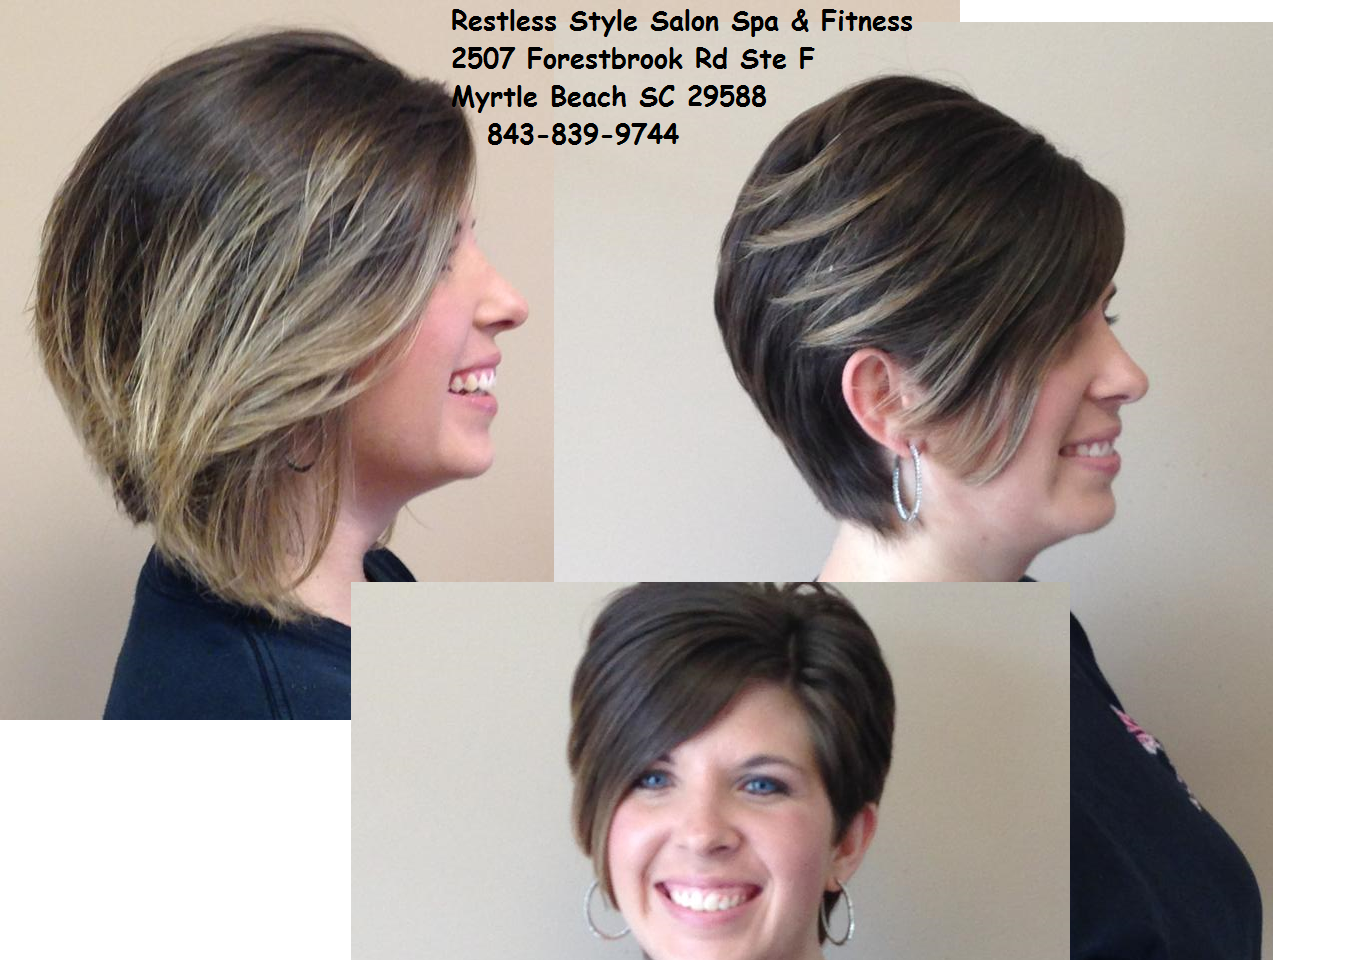 Before And After Picture From Restless Style Salon Spa Fitness Myrtle Beach Beauty Salon Beach Beauty Beauty Skin Care Specialist